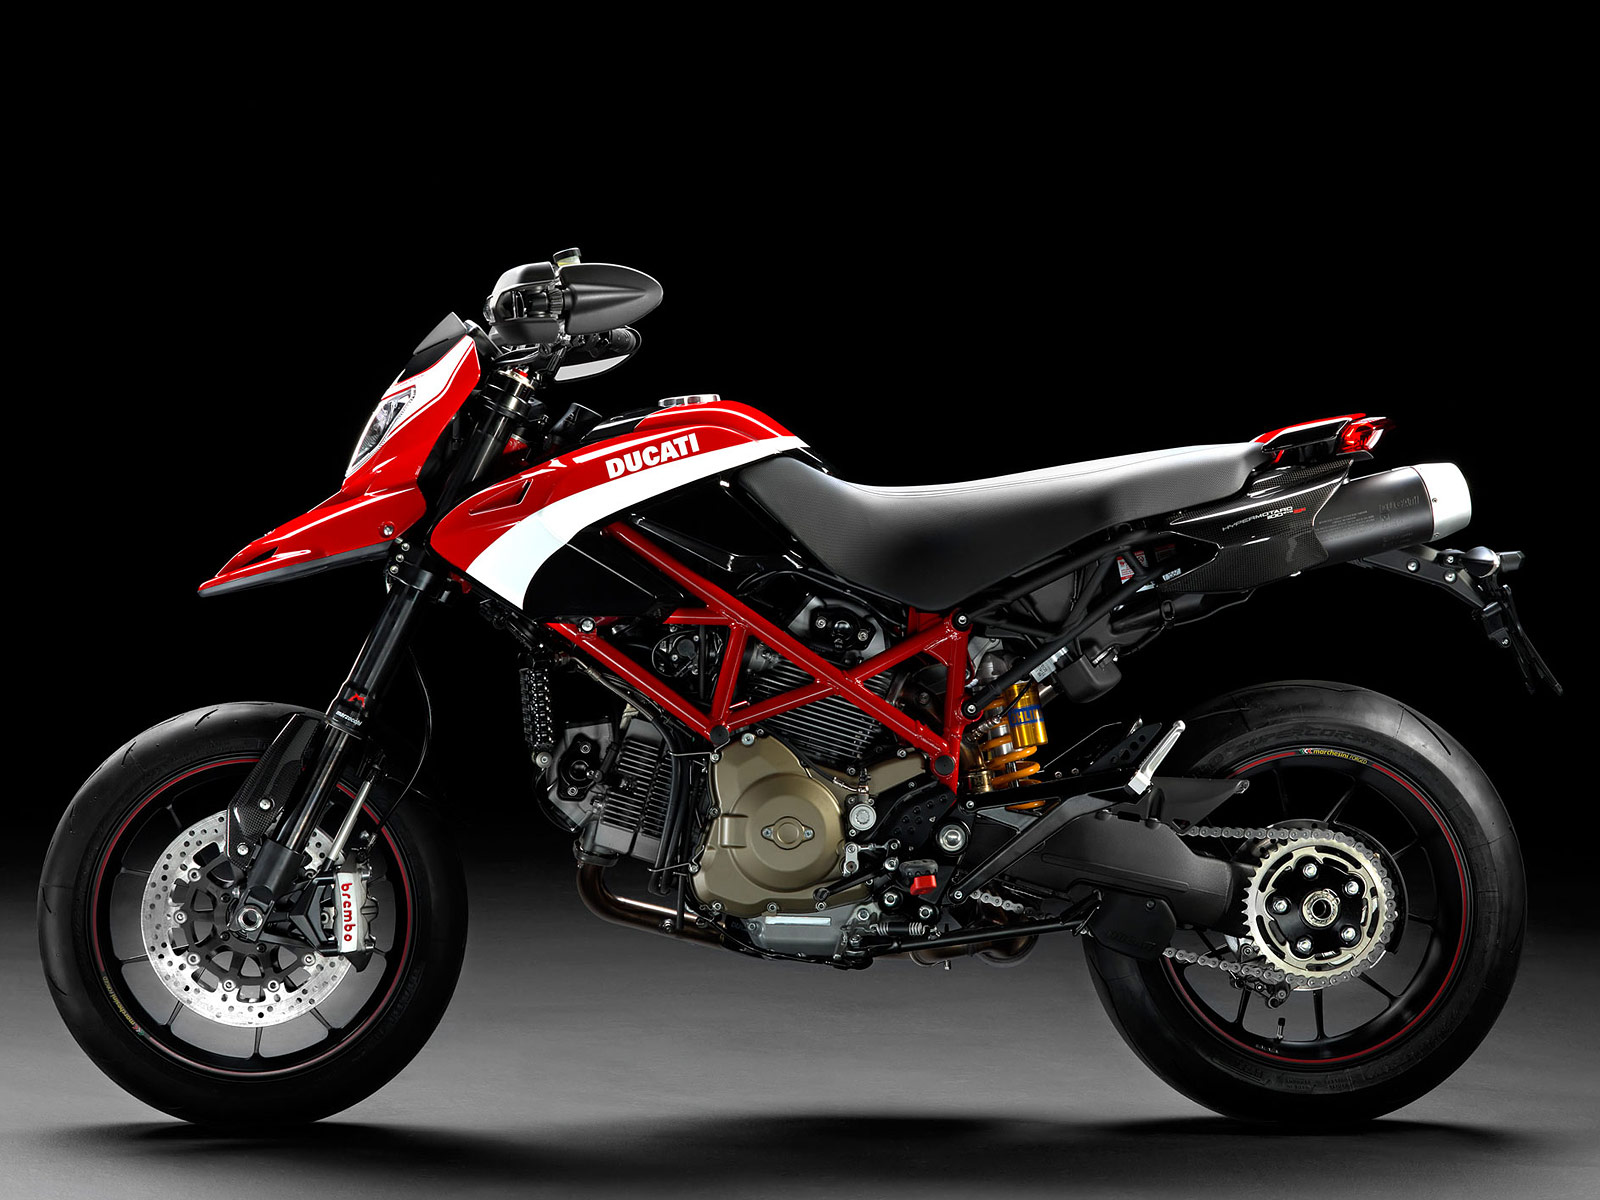 2012 ducati hypermotard 1100 evo sp pictures specifications. Black Bedroom Furniture Sets. Home Design Ideas